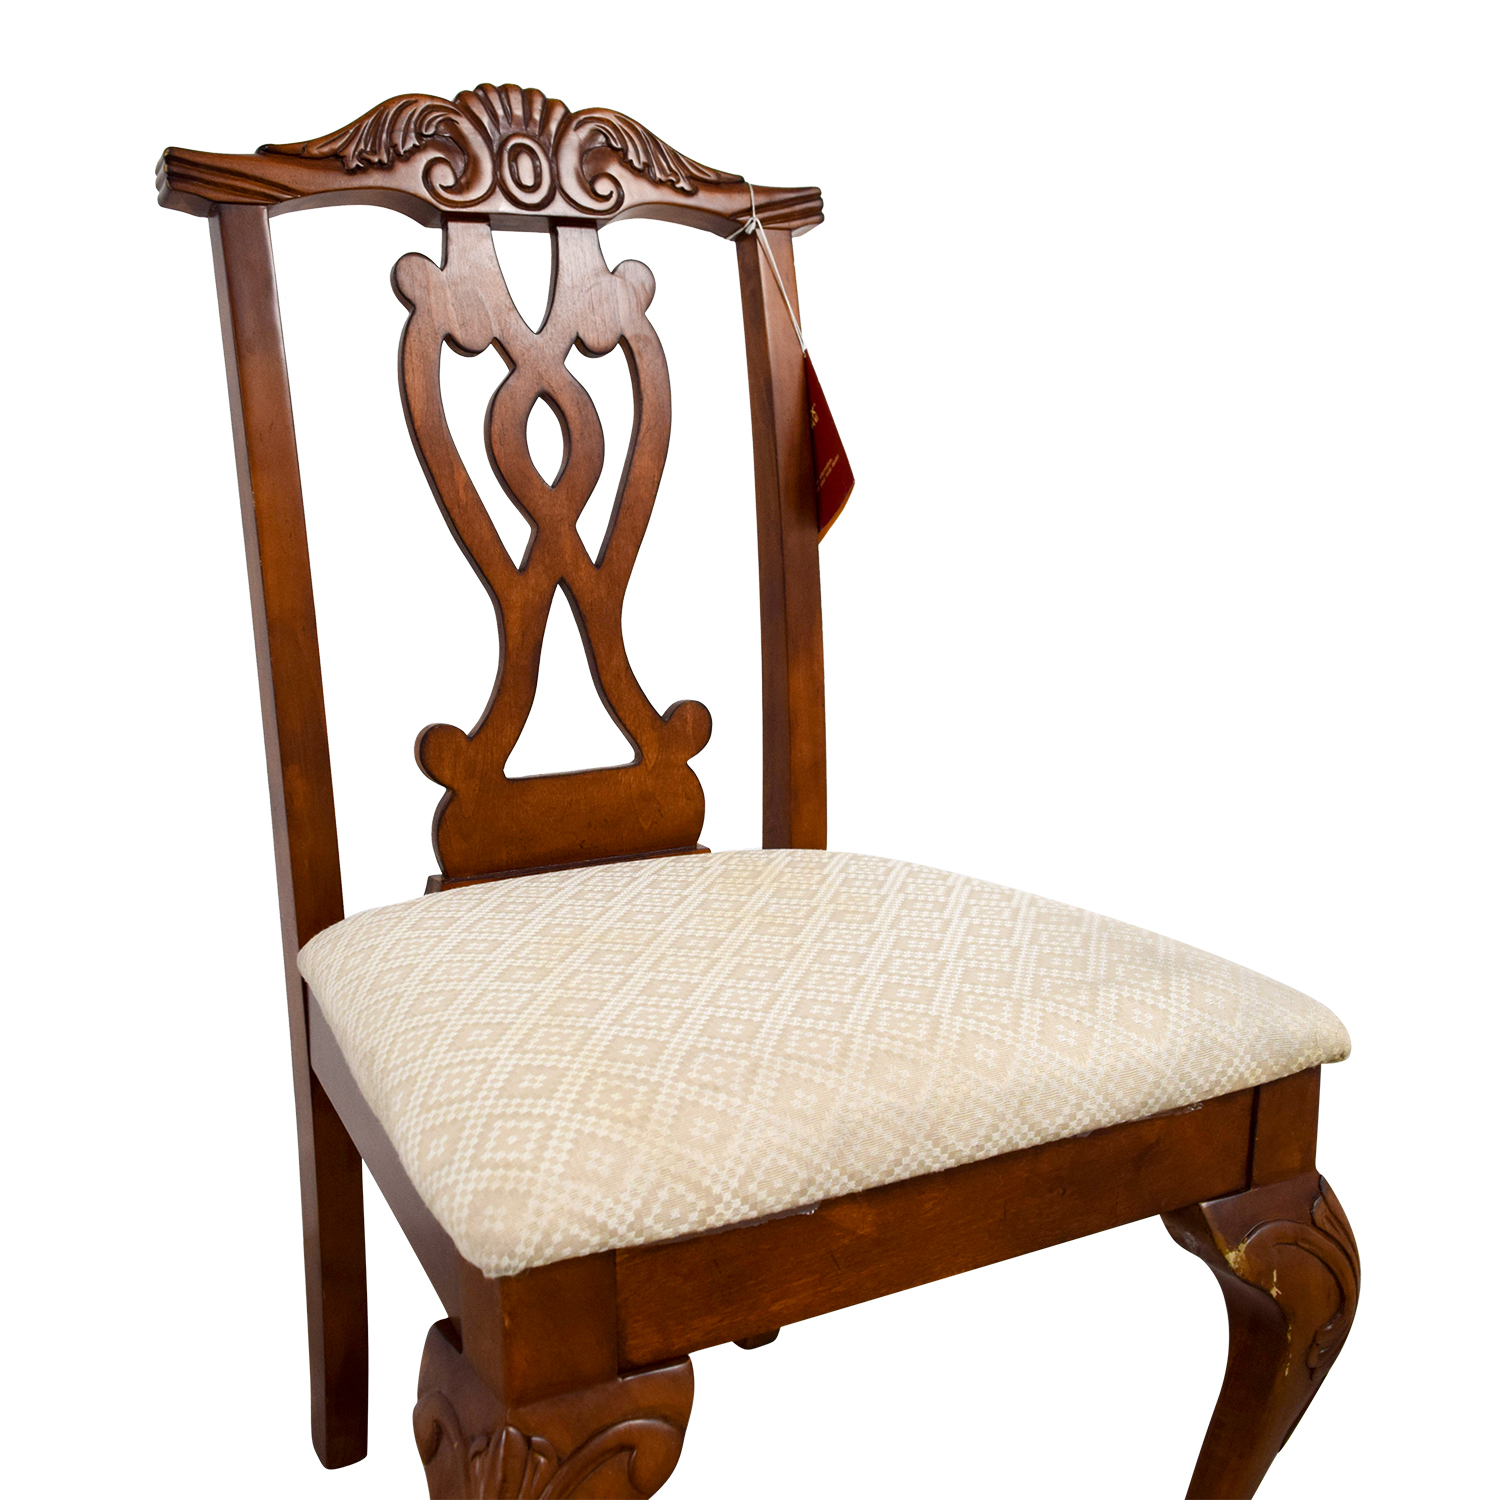 Poundex Furniture Poundex Furniture Traditional Wood and Off White Chair dimensions